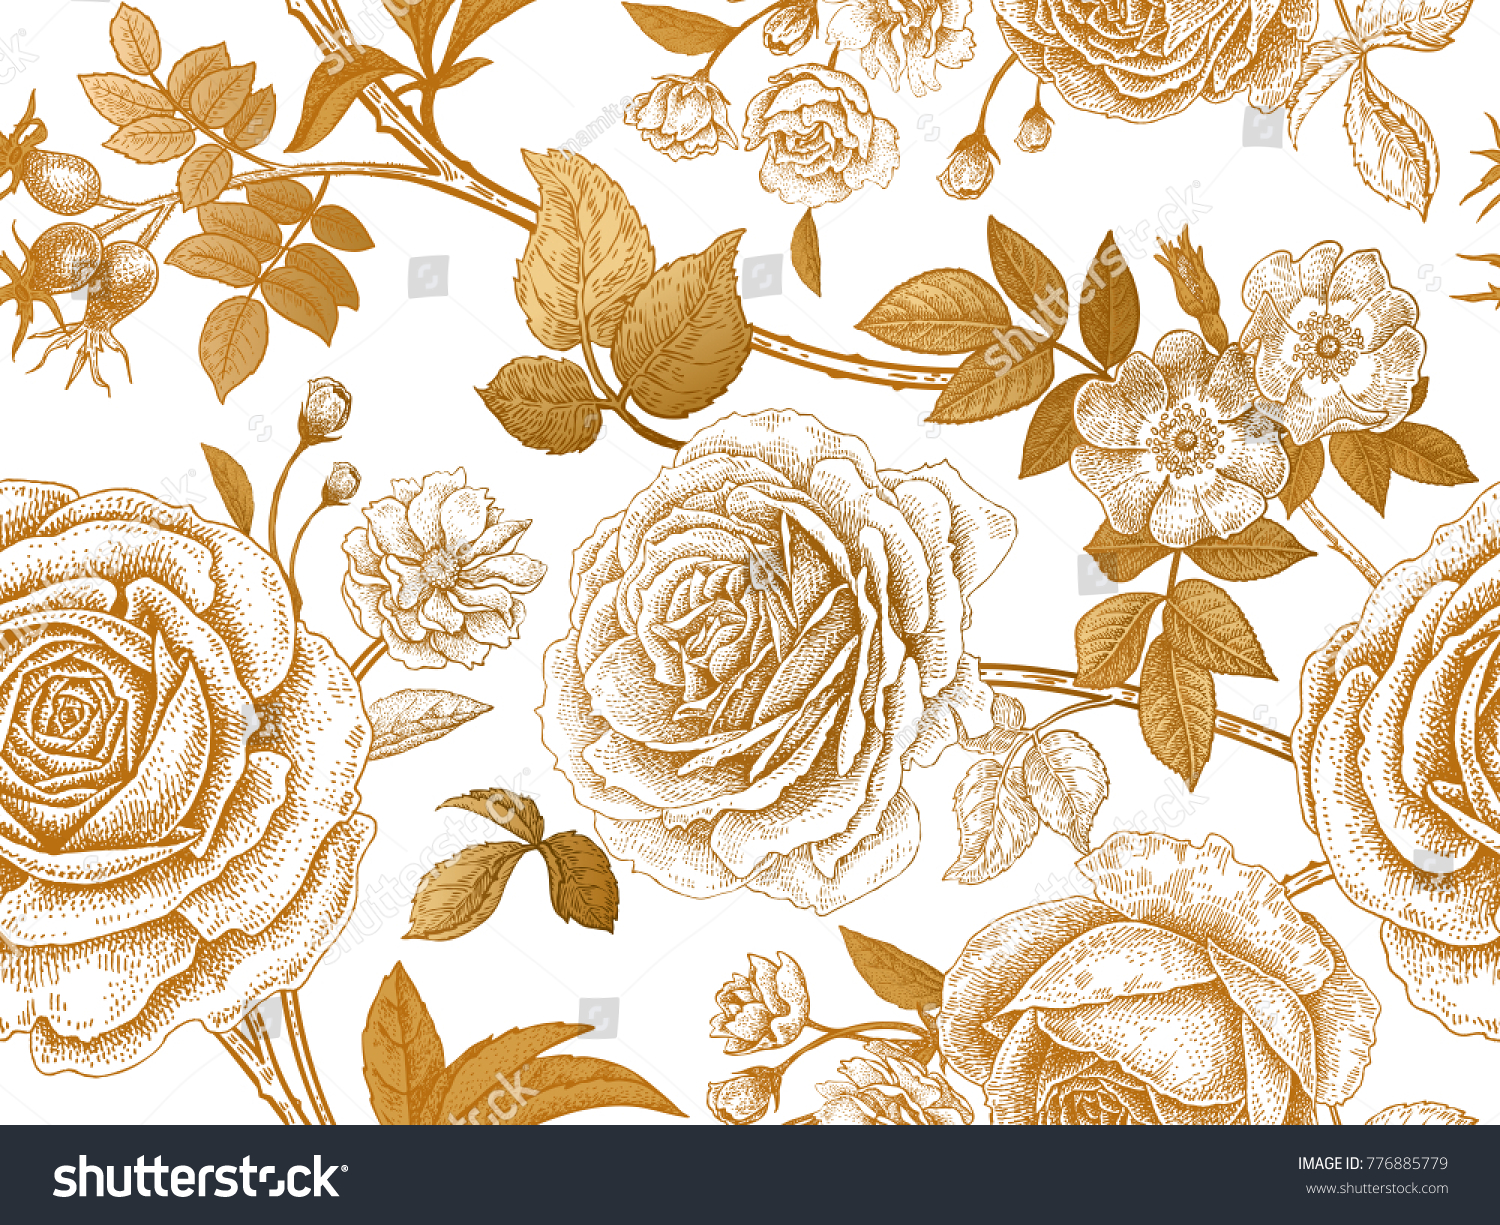 Garden Roses Briar Gold Flowers Leaves Stock Vector Royalty Free